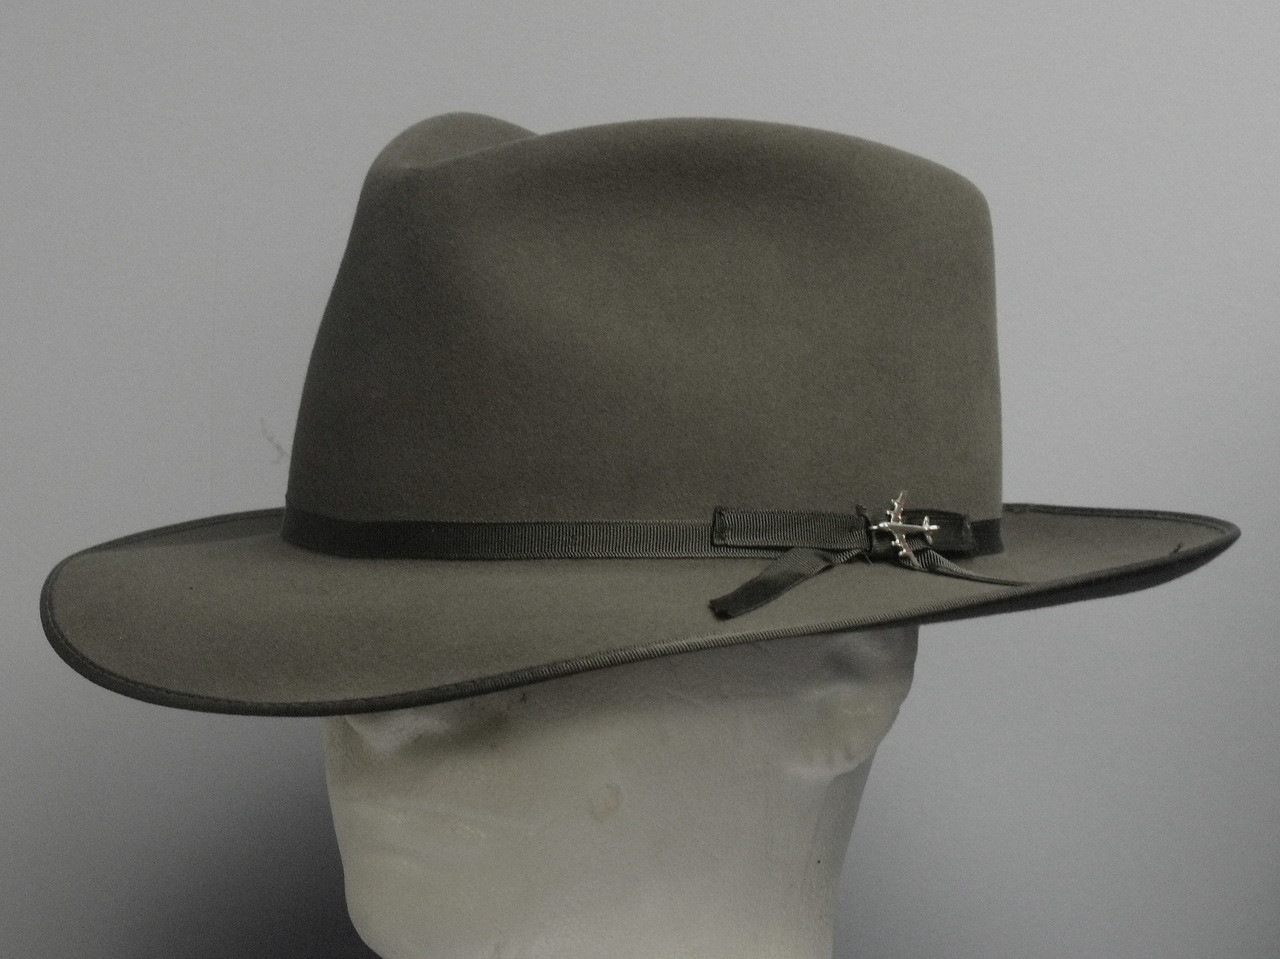 Stetson Stratoliner Royal Fur Felt Fedora Hat - One 2 mini Ranch b4f74ccd082f